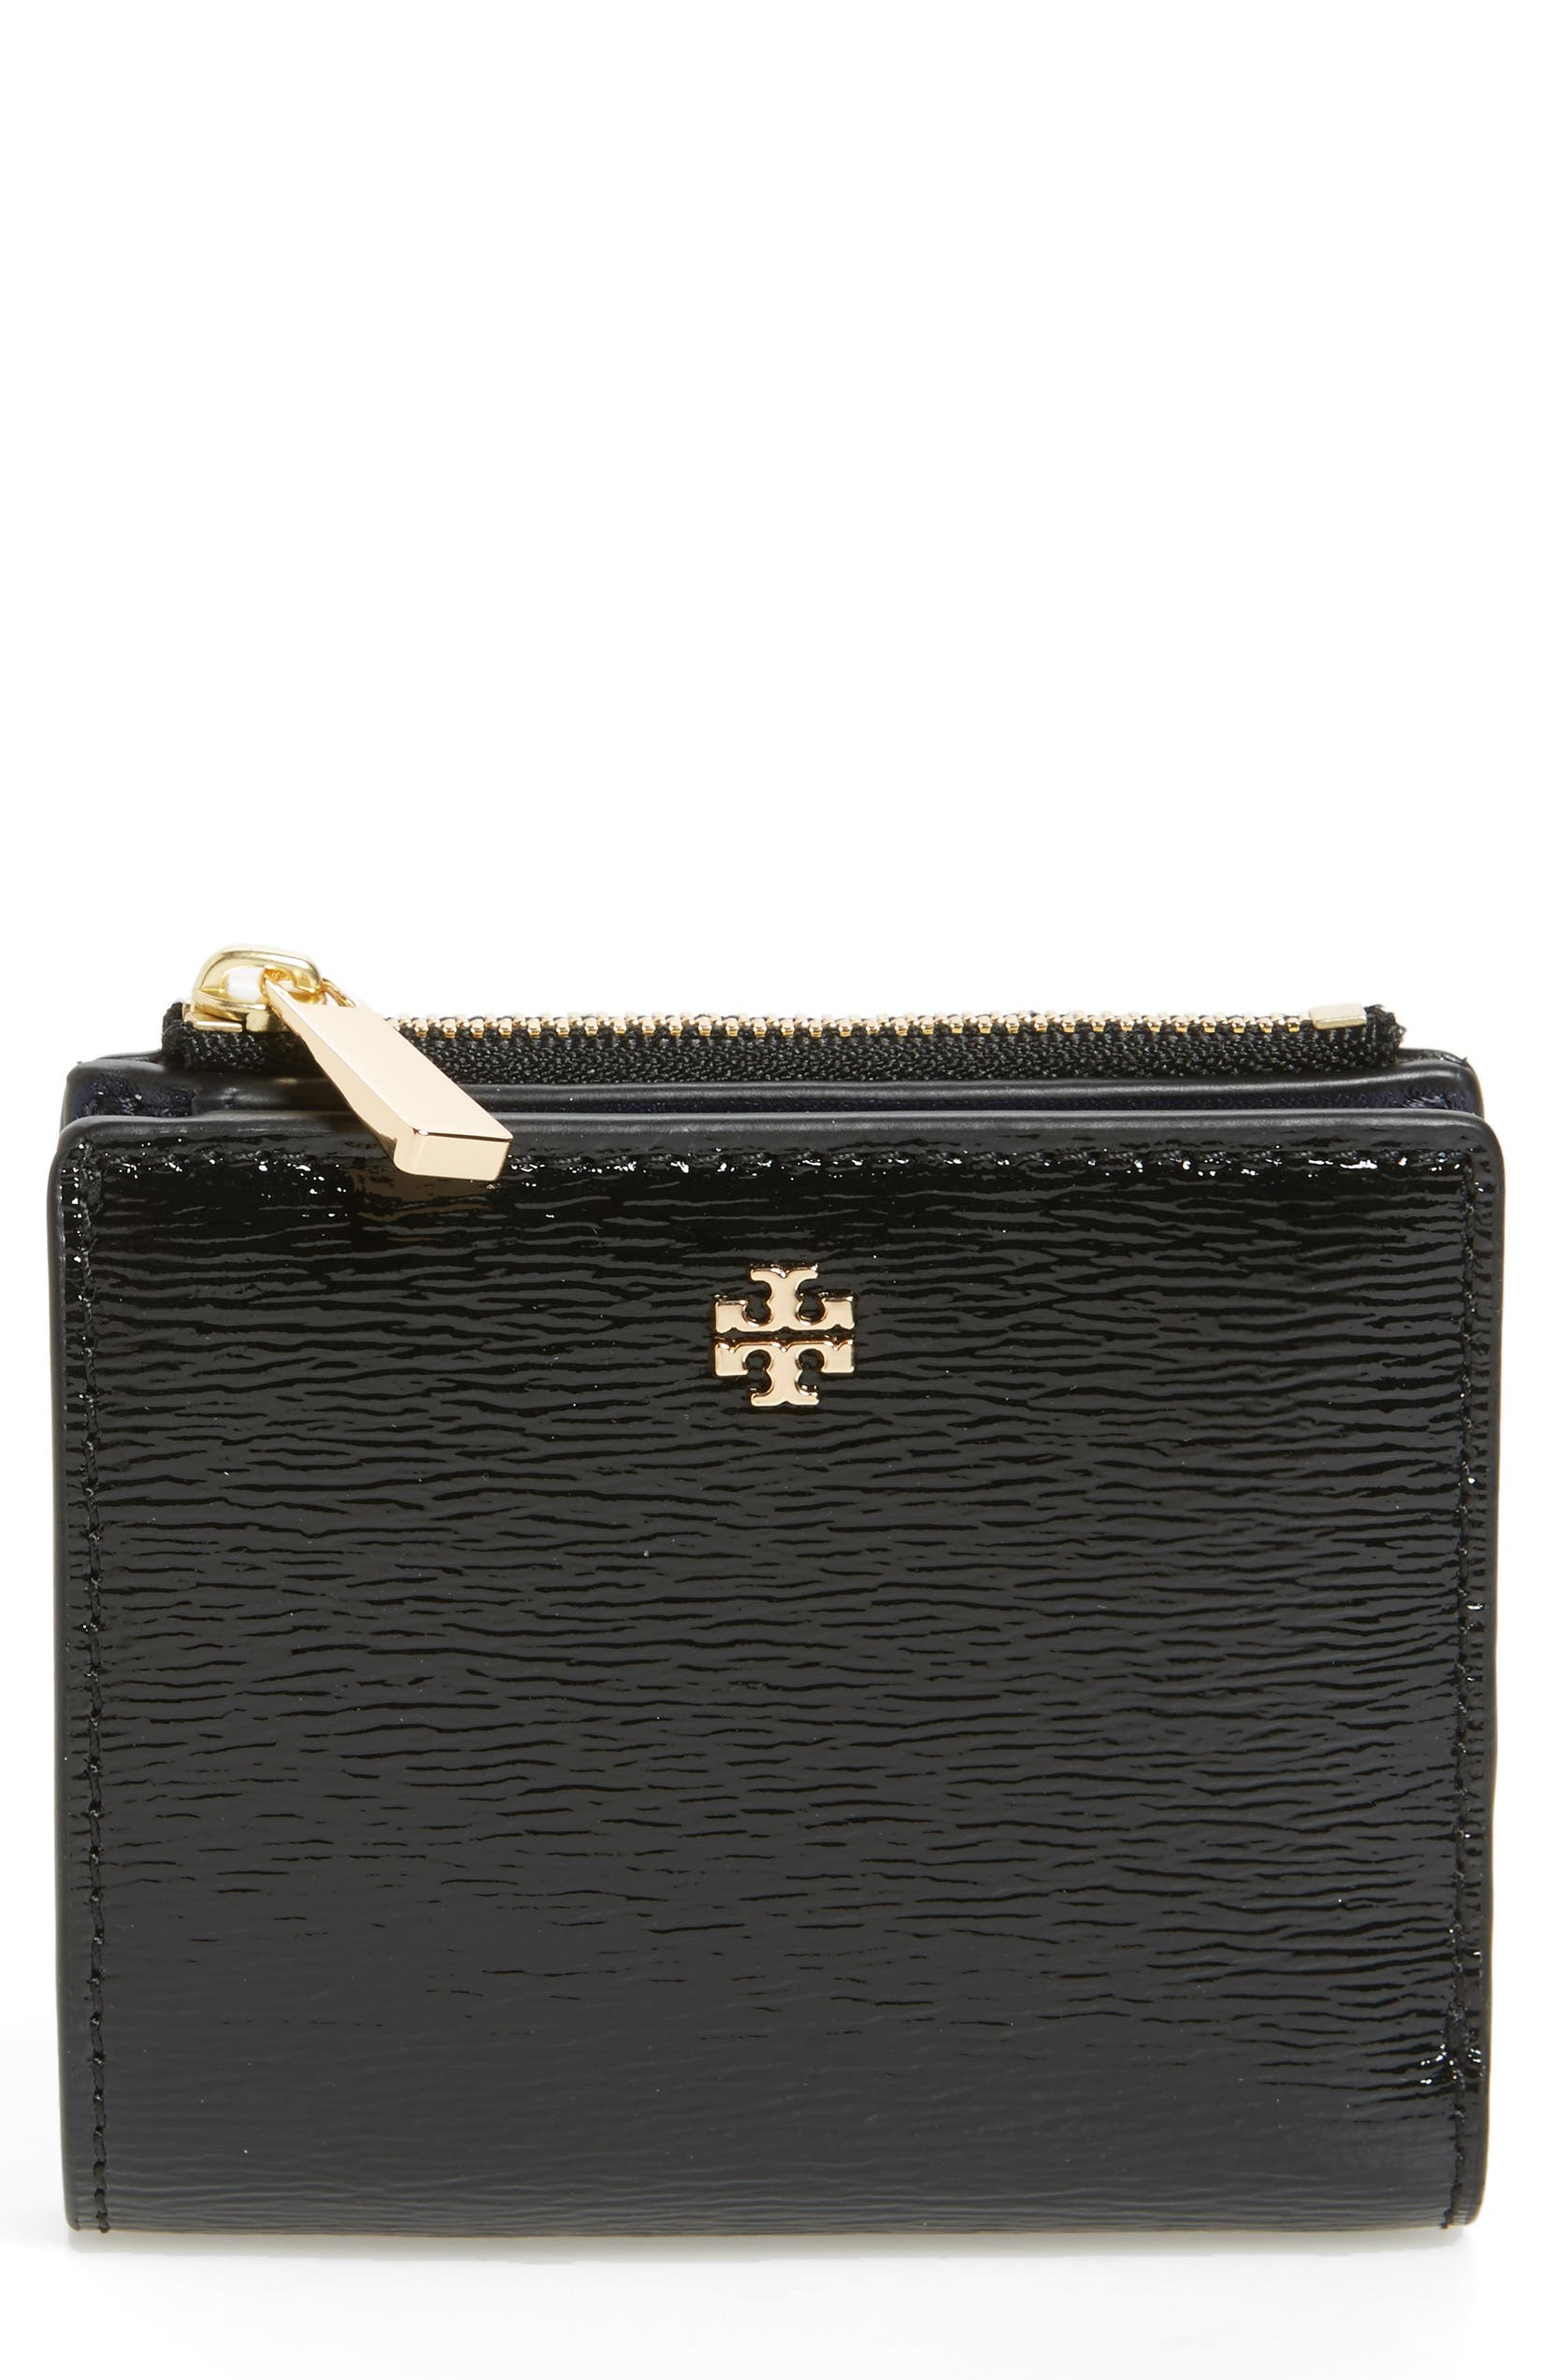 377701d336d9 Tory Burch Mini Robinson Wallet Patent Leather Bifold Wallet